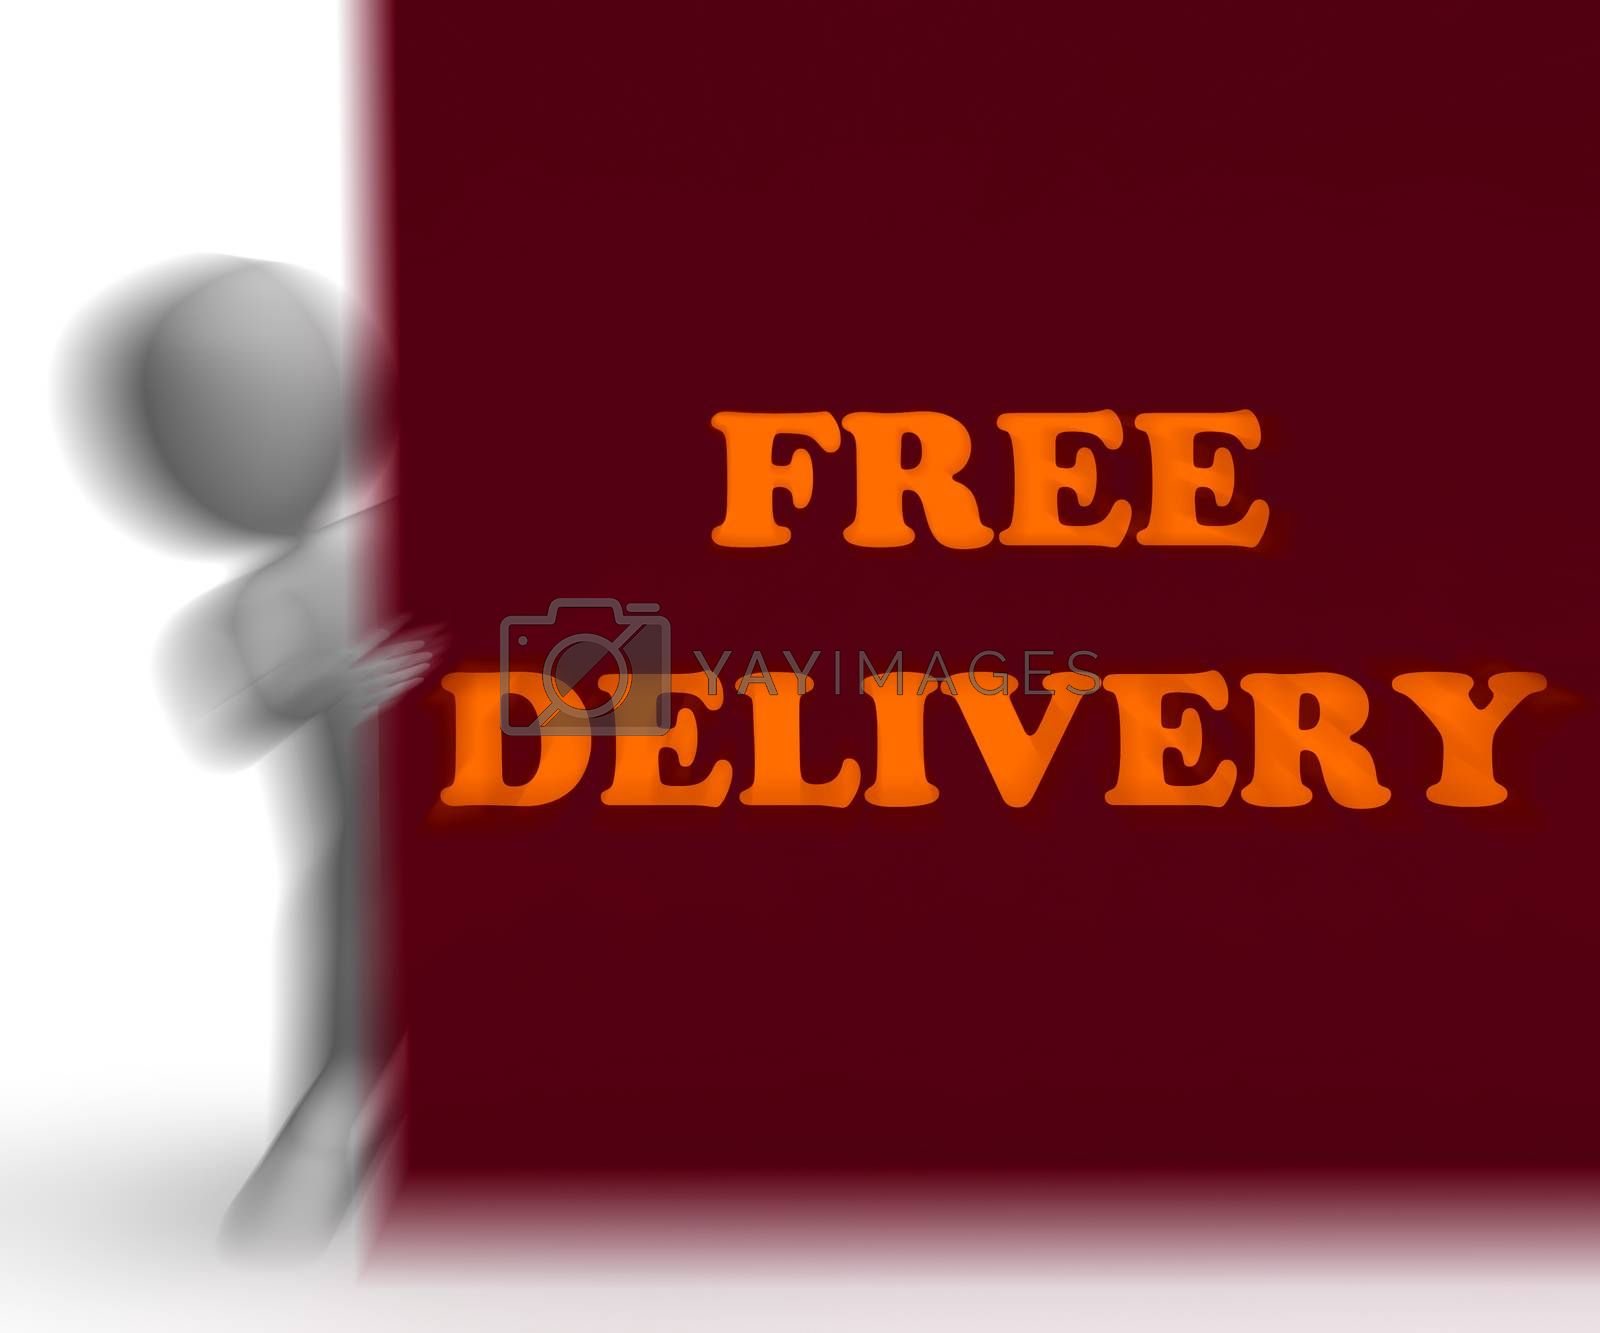 Free Delivery Placard Shows Express Shipping And No Charge by stuartmiles